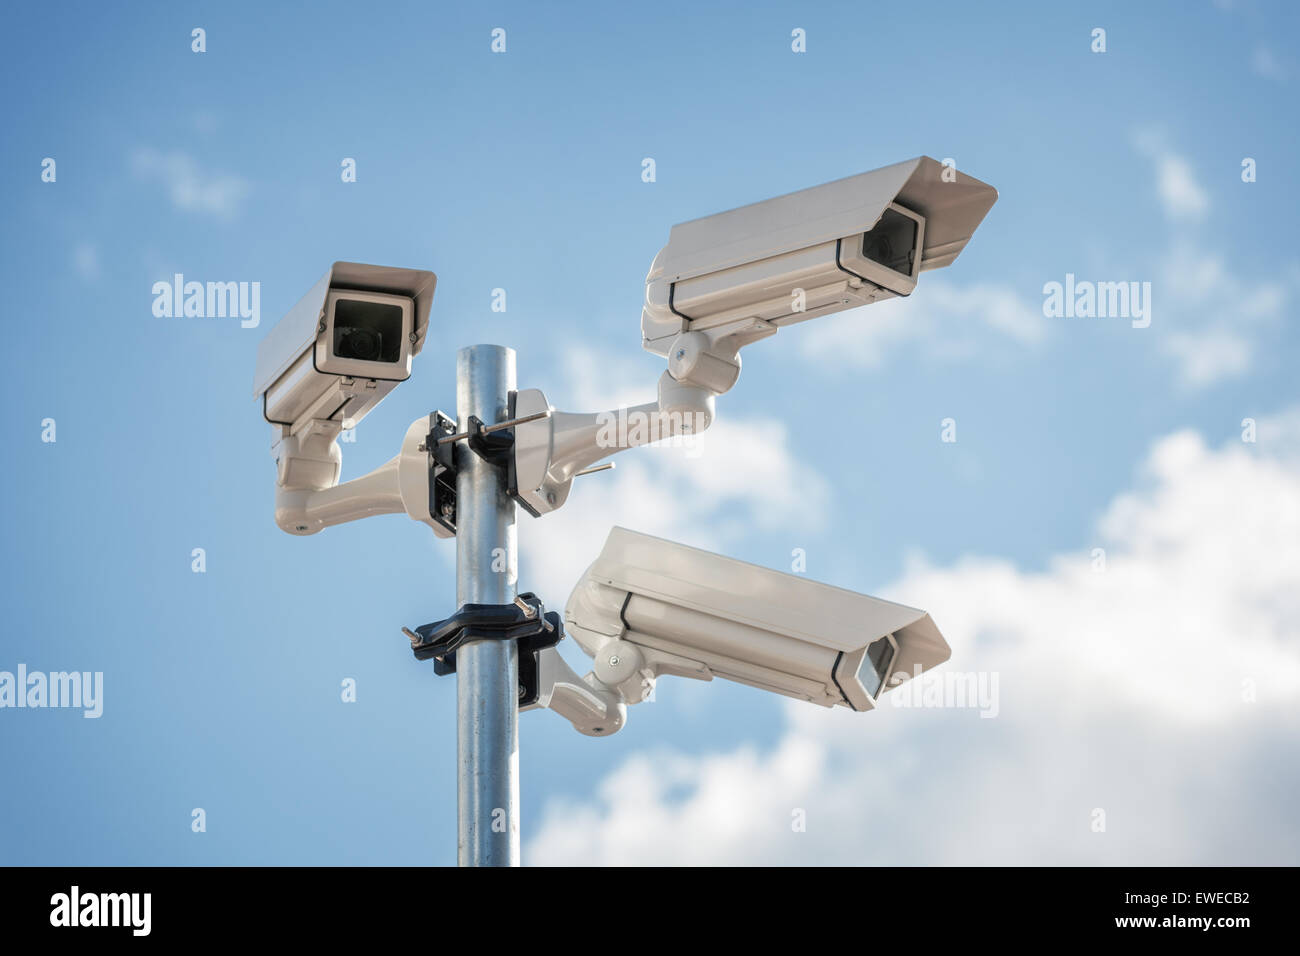 Security cctv surveillance camera - Stock Image